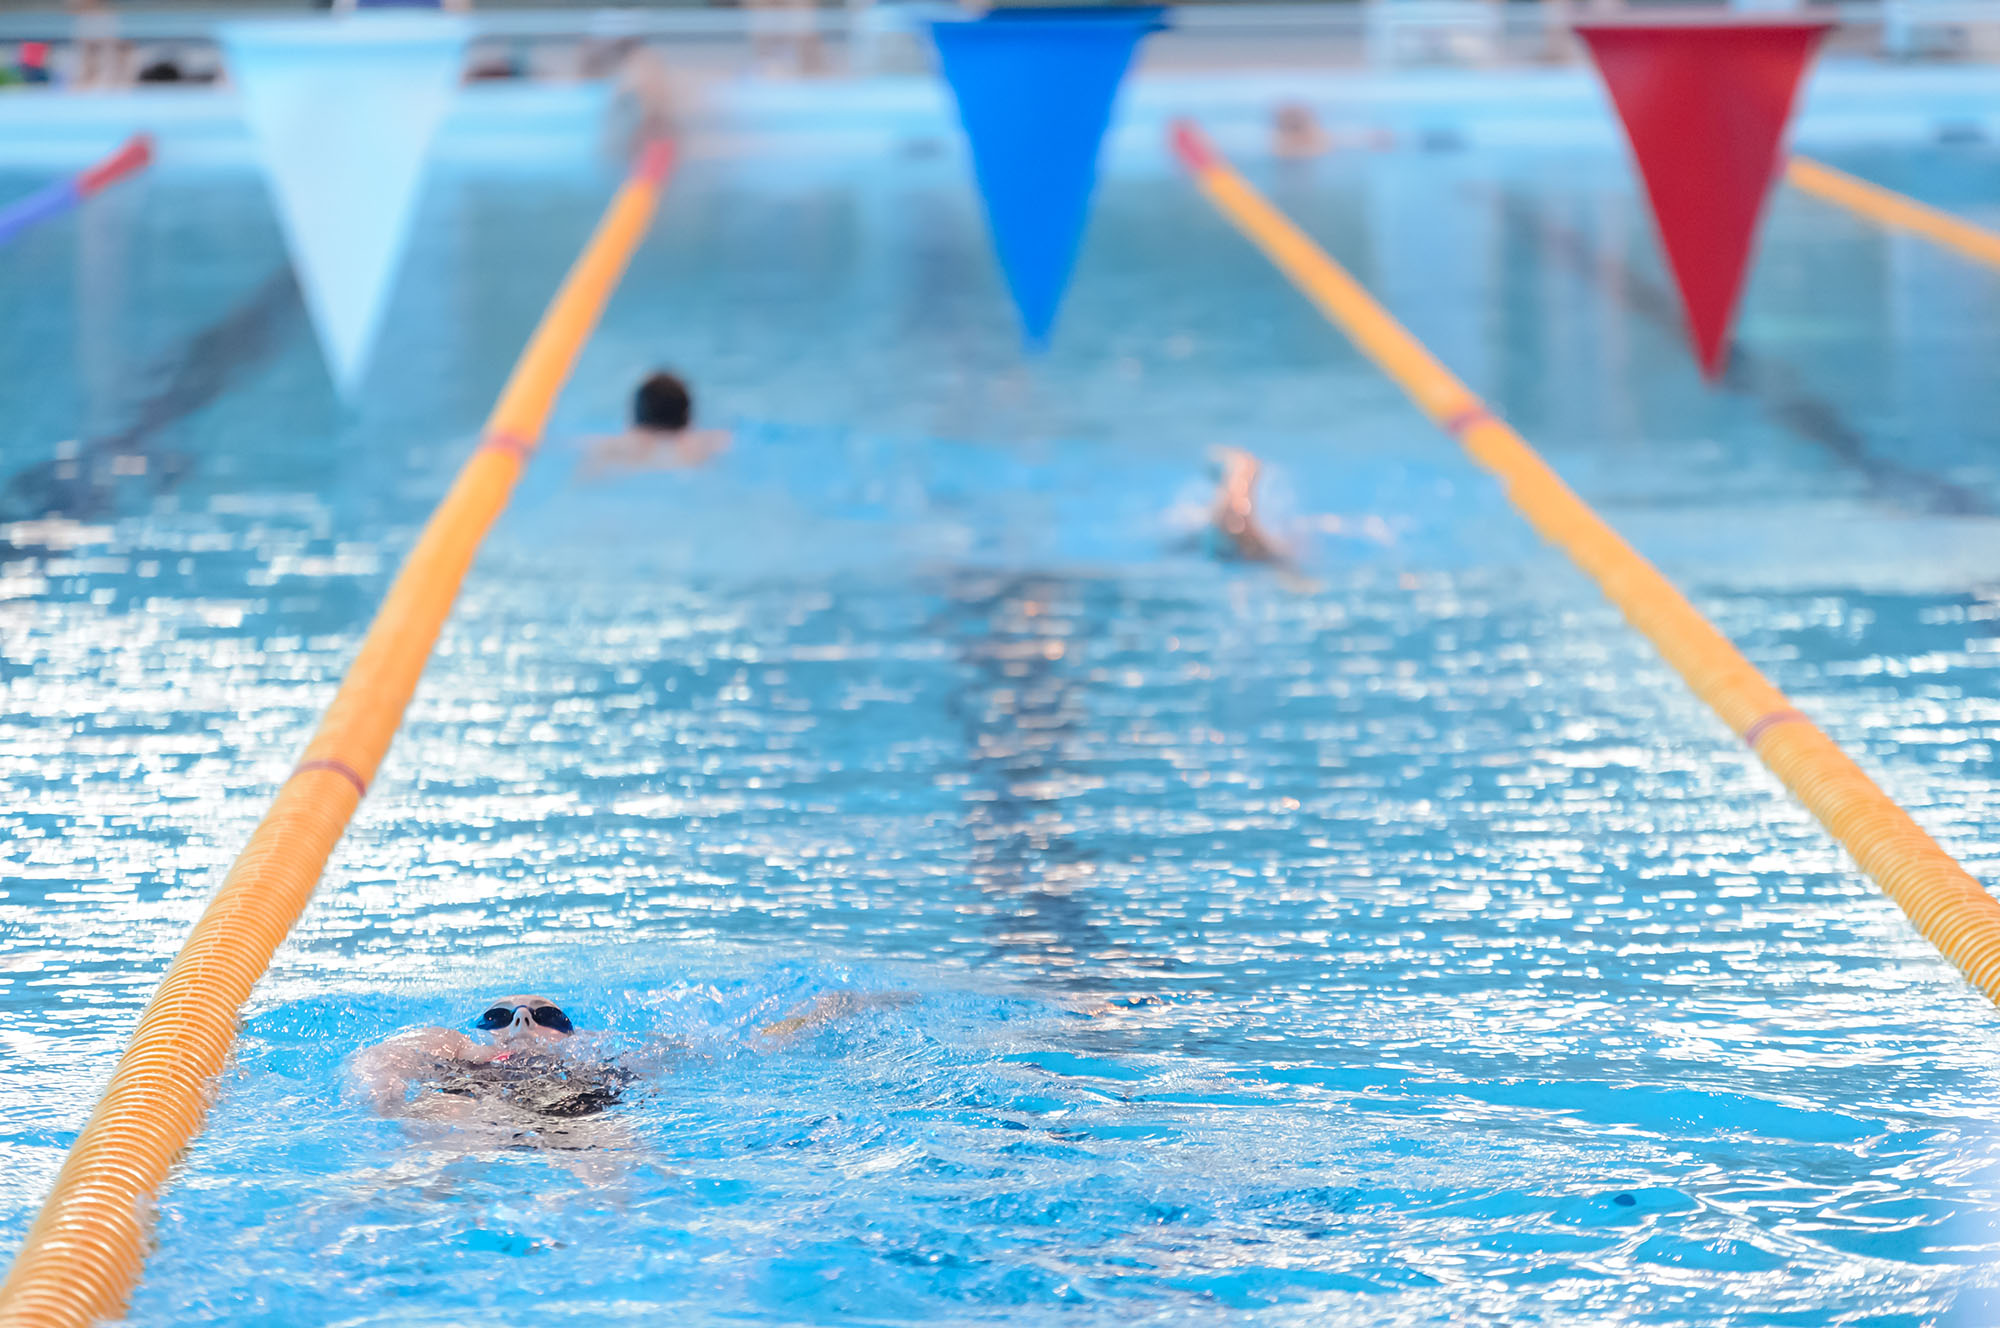 A woman swimming in a lane at the London Aquatics Centre